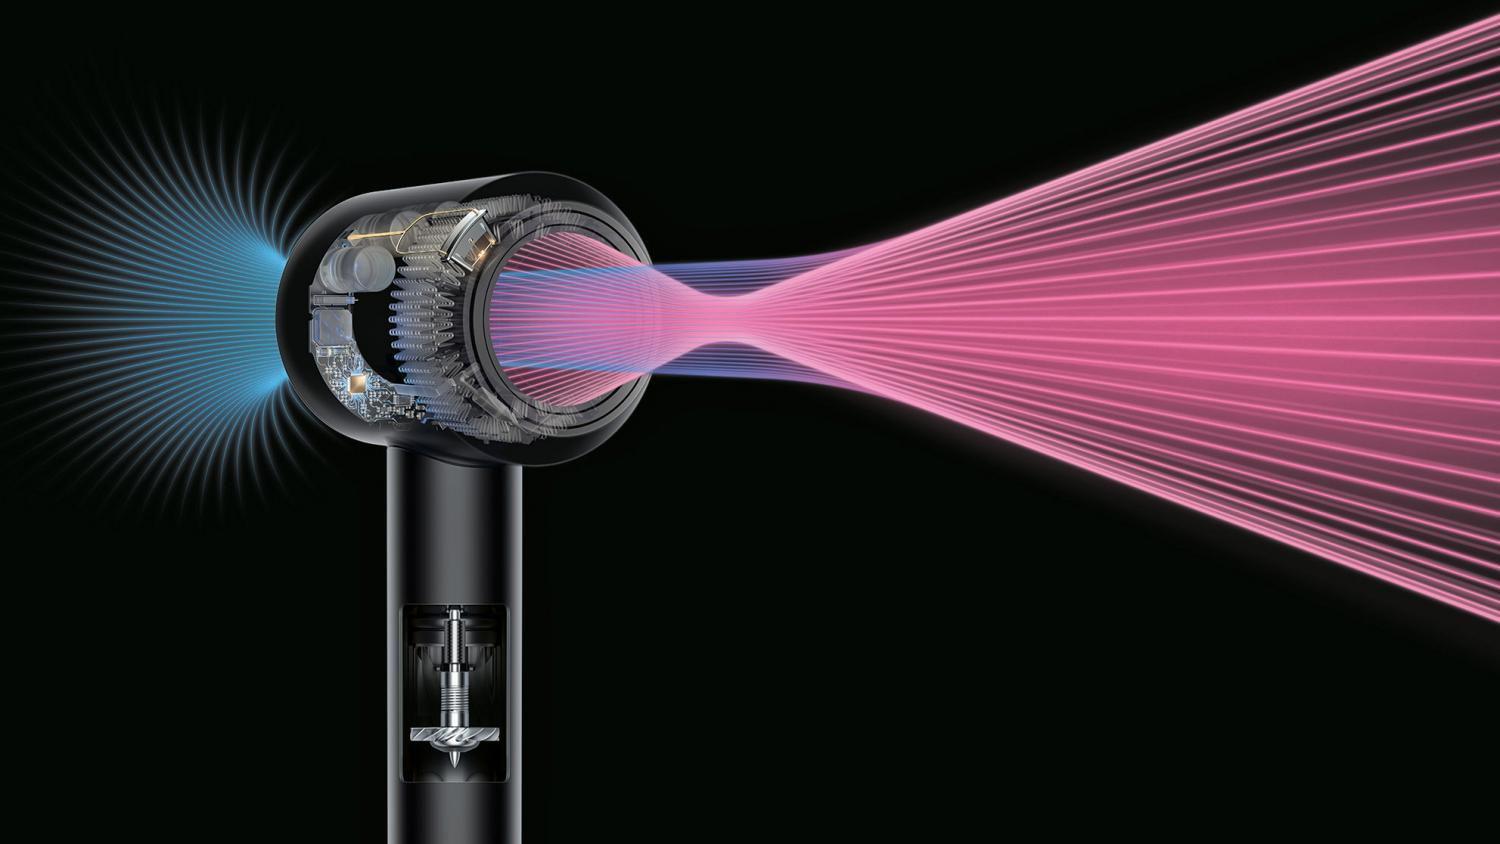 Fast Spinning Heat Controlling Hair Dryer Latest Dyson Opus